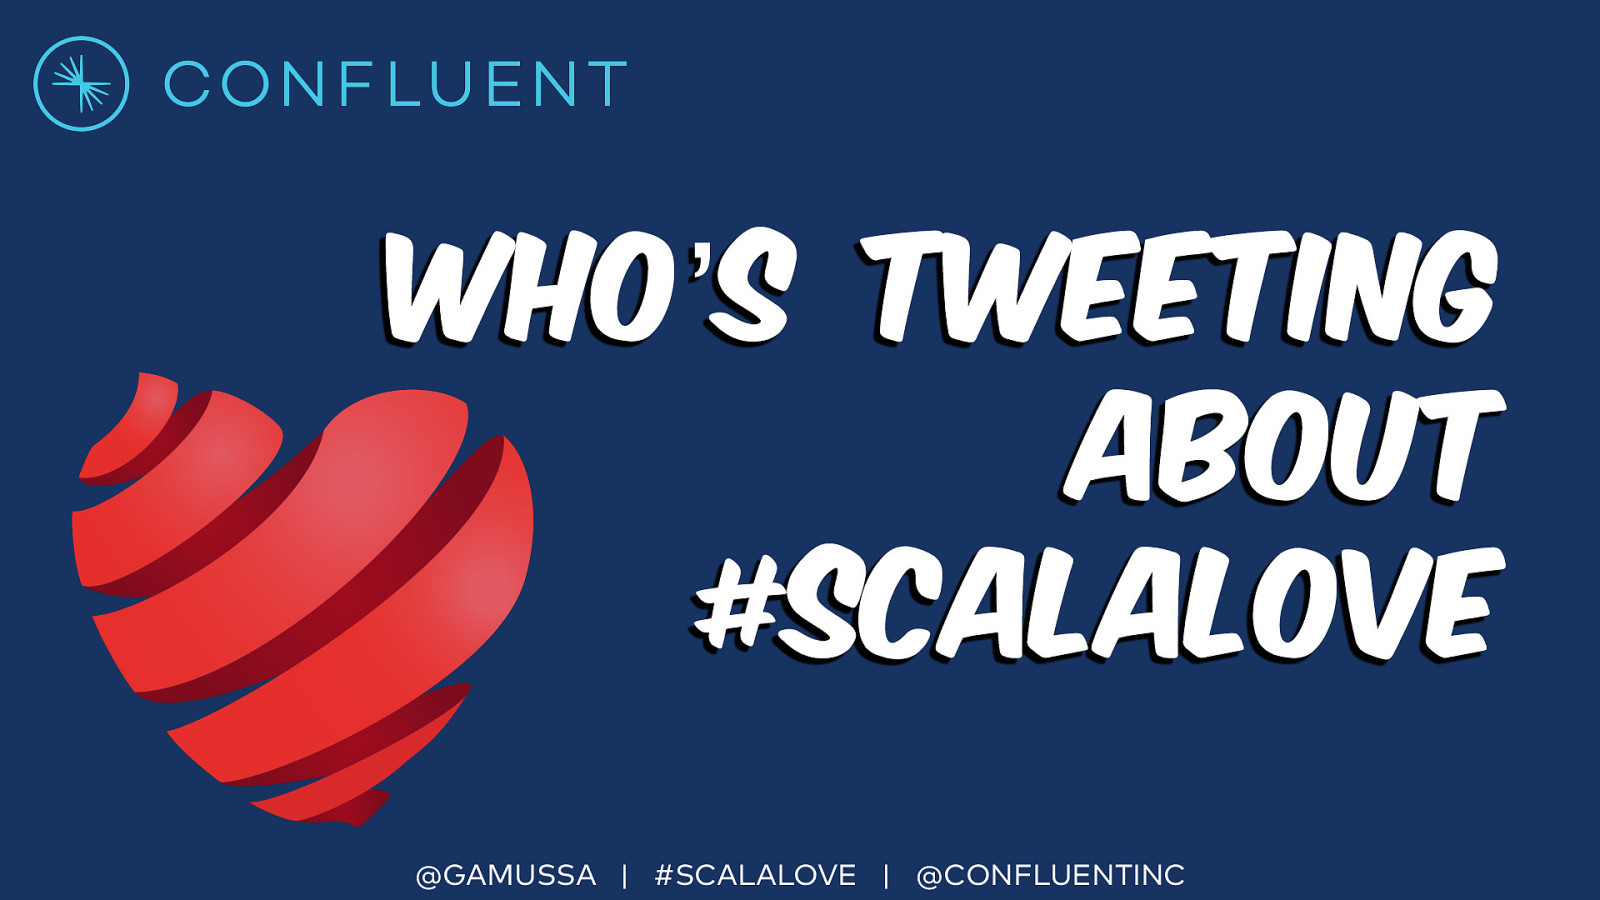 Who's tweeting about #ScalaLove